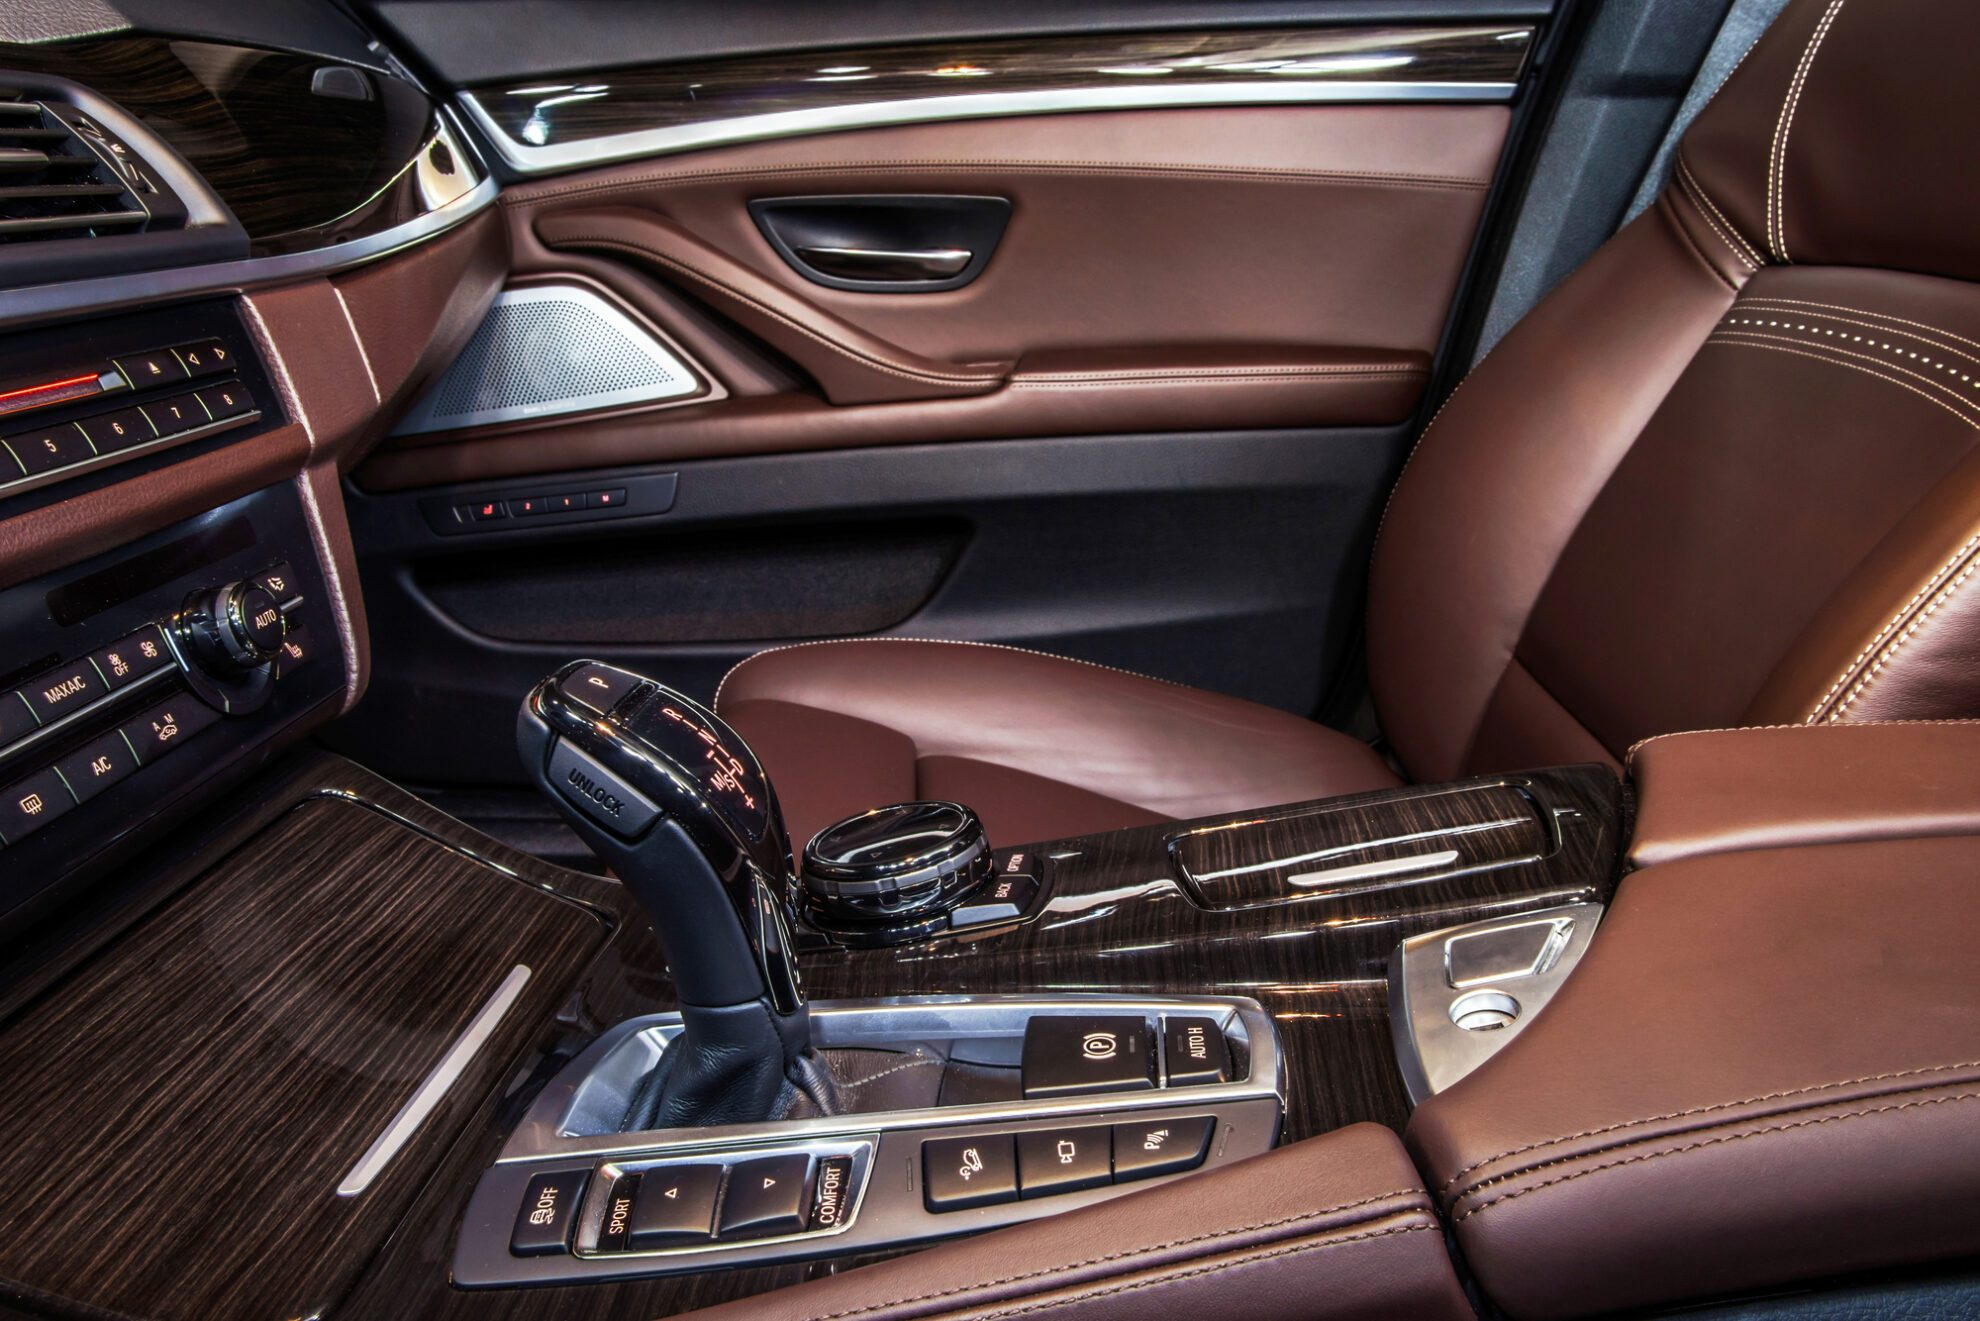 How to Save Your Customer's Purchase through Interior and Exterior Protection Products